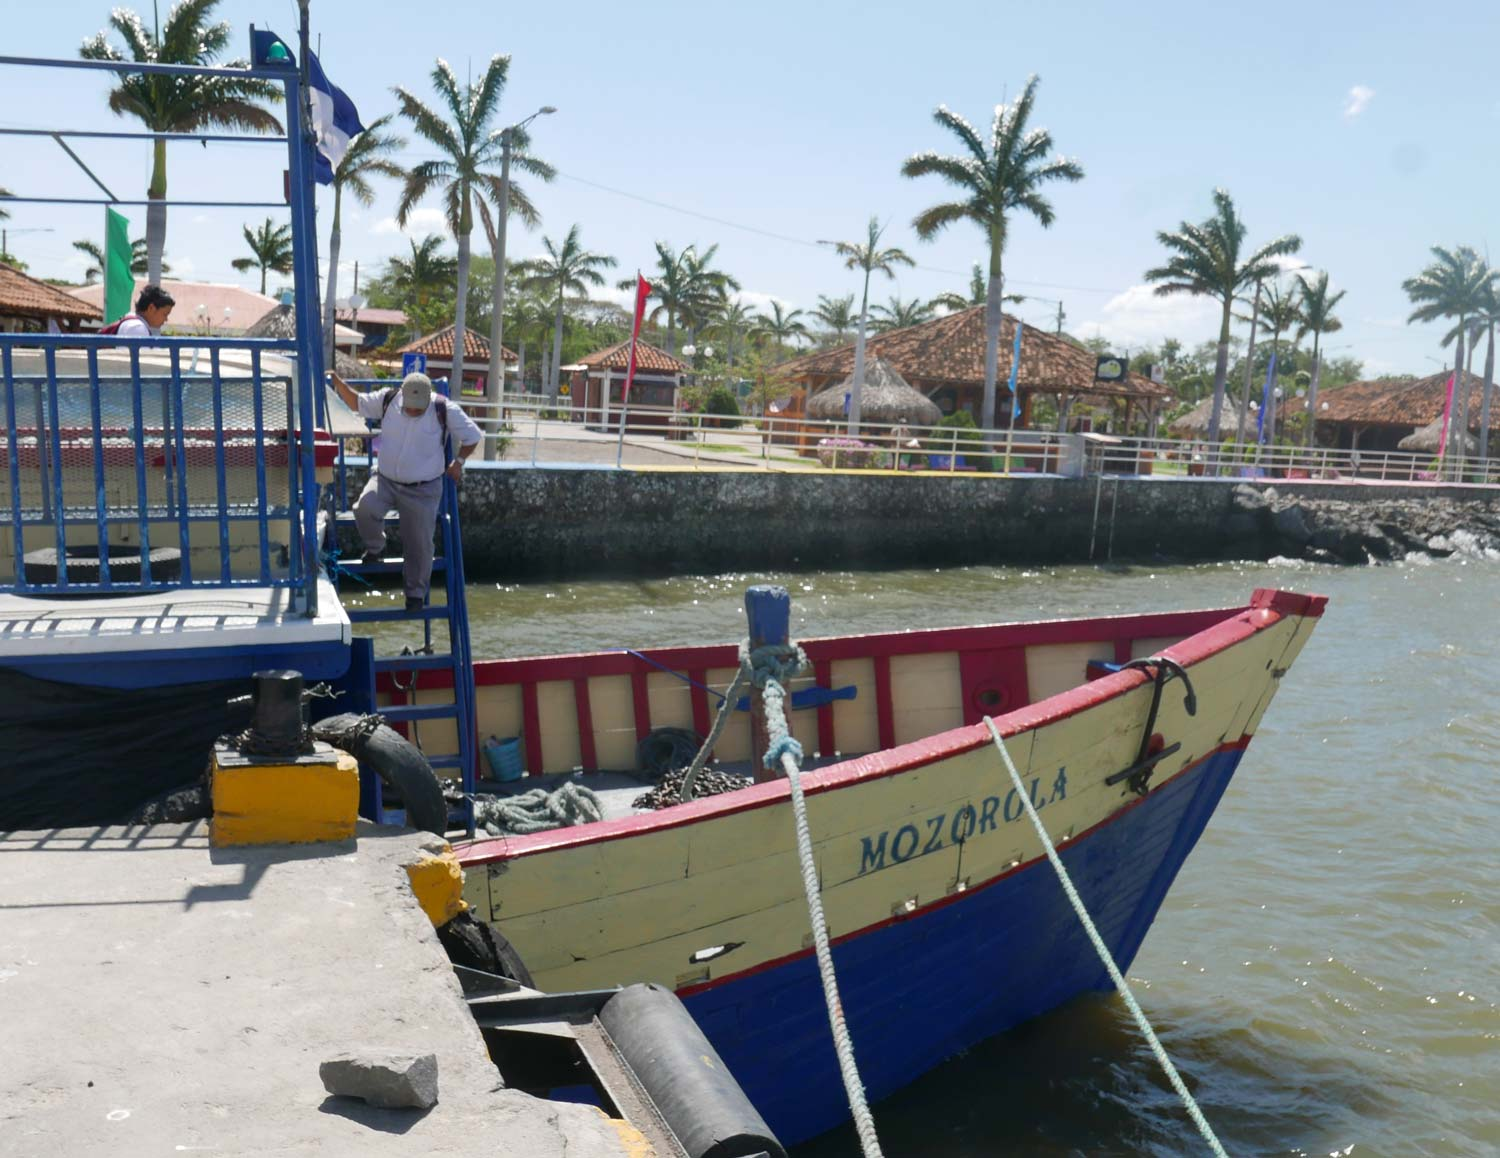 The small boat that took us from Rivas to Ometepe island